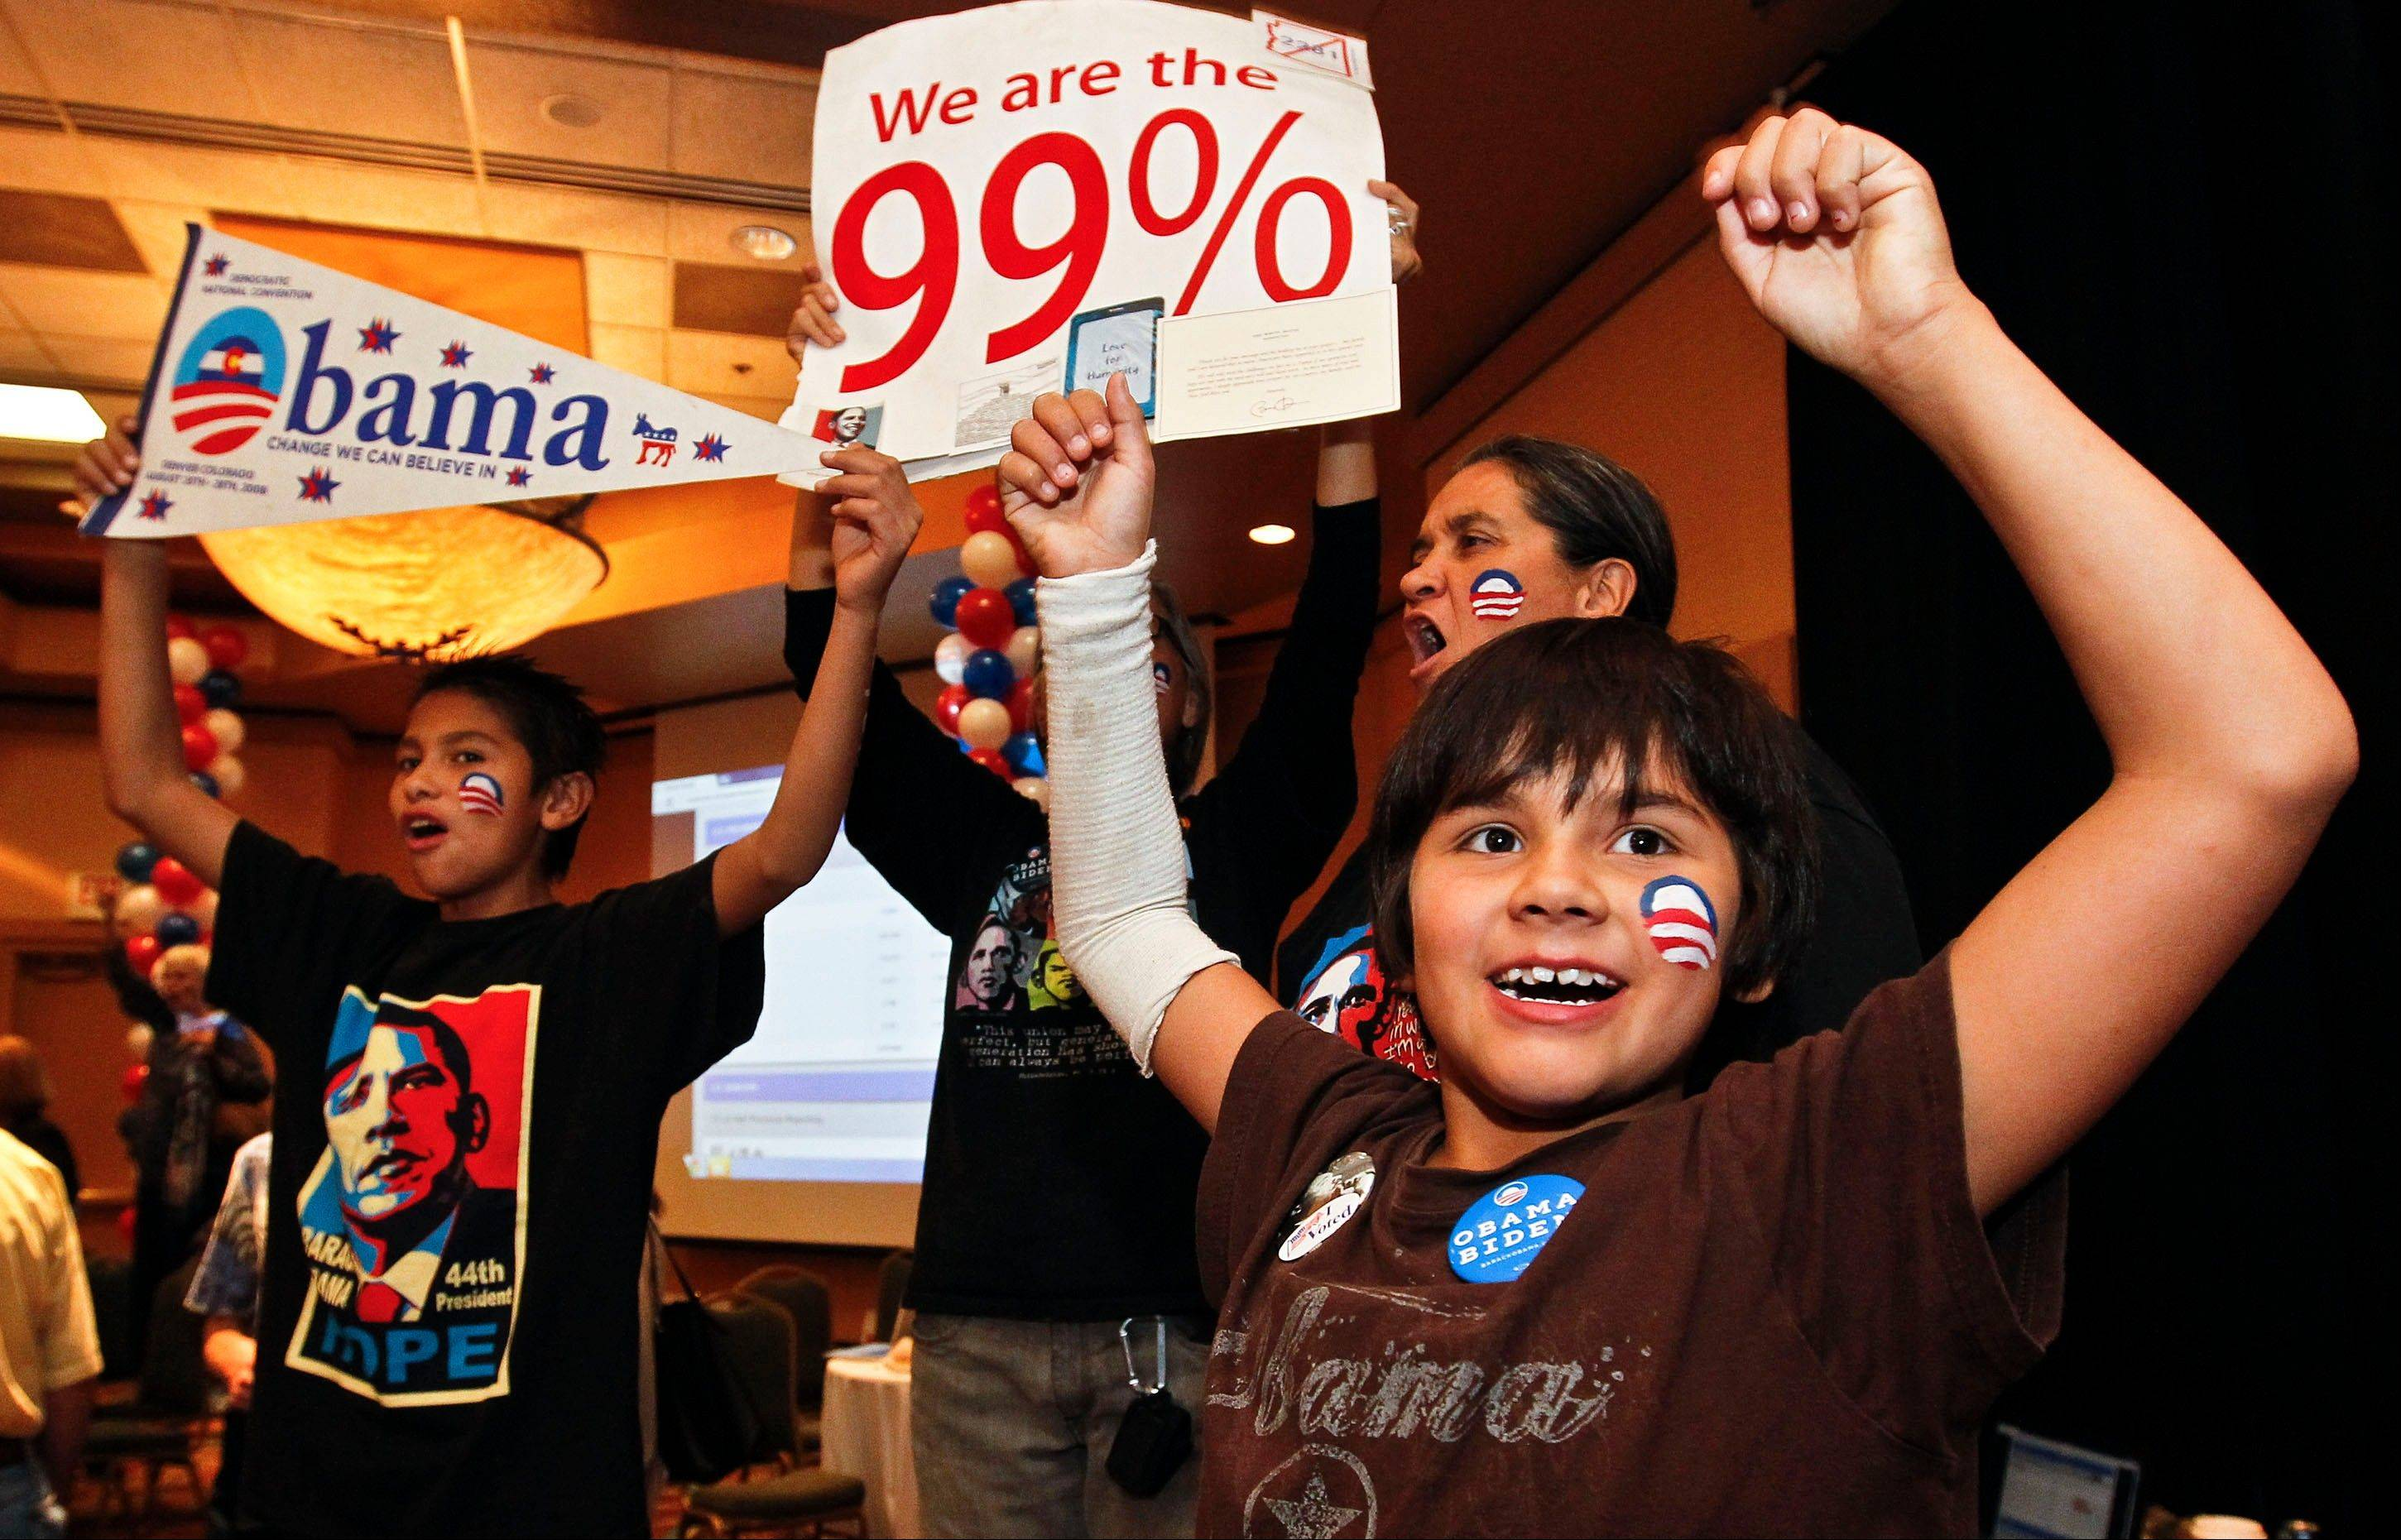 Arizona Democrats of all ages celebrate as President Barack Obama is declared the winner of the presidential race at a Democratic Party gathering, Tuesday, Nov. 6, 2012, in Tucson, Ariz. Younger and minority voters helped put President Barack Obama over the top.